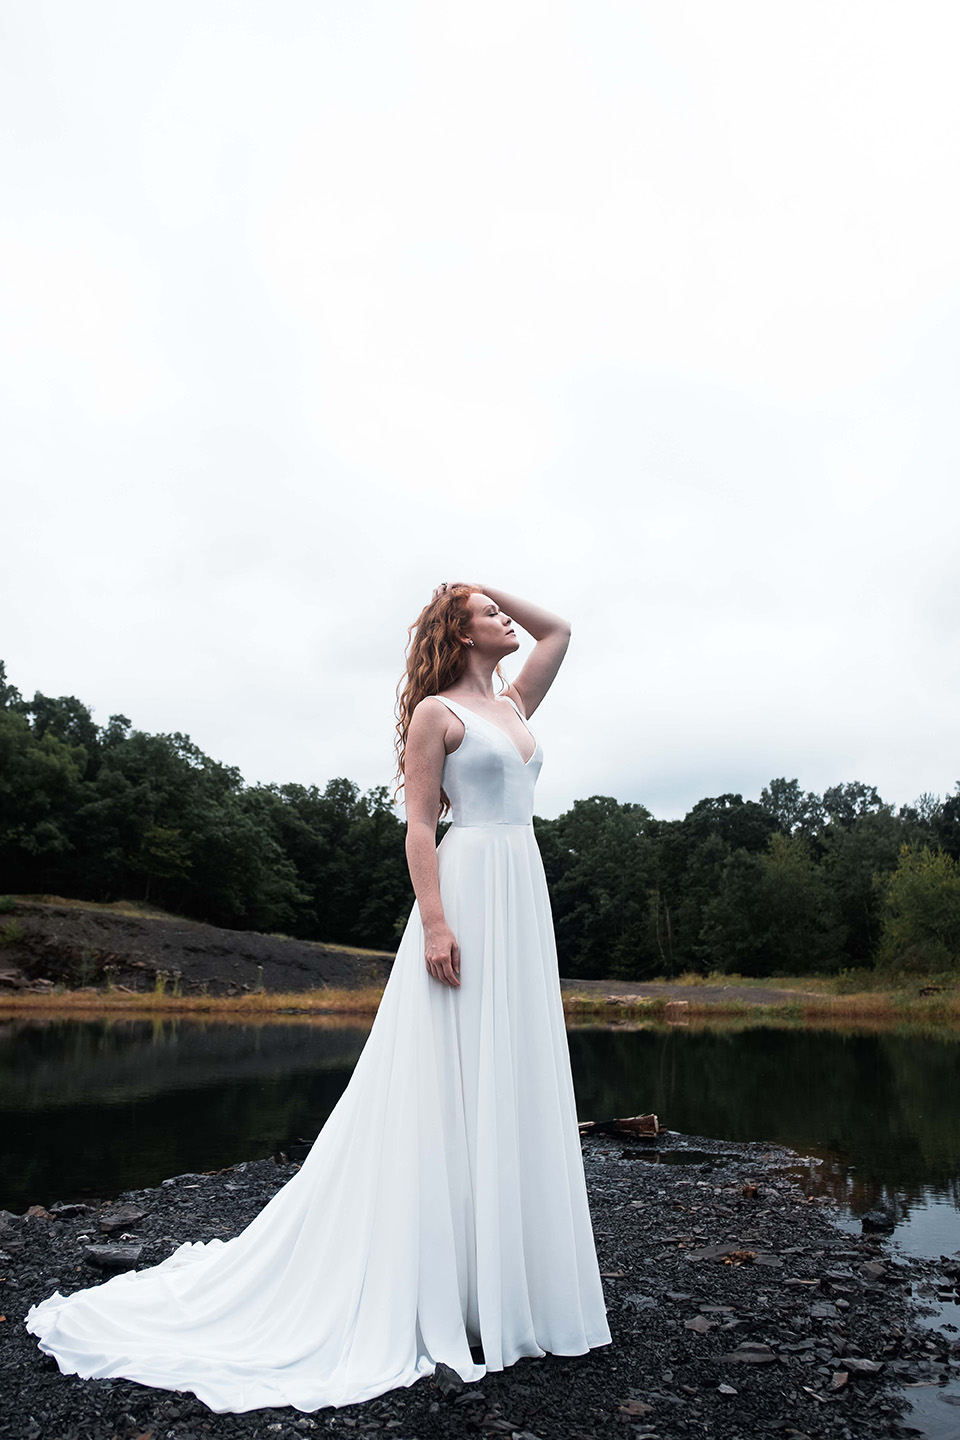 WSPCo-Gather-Greene-Rebecca-Schoneveld-Bridal-423_modern_clean_beach_wedding_gown.jpg